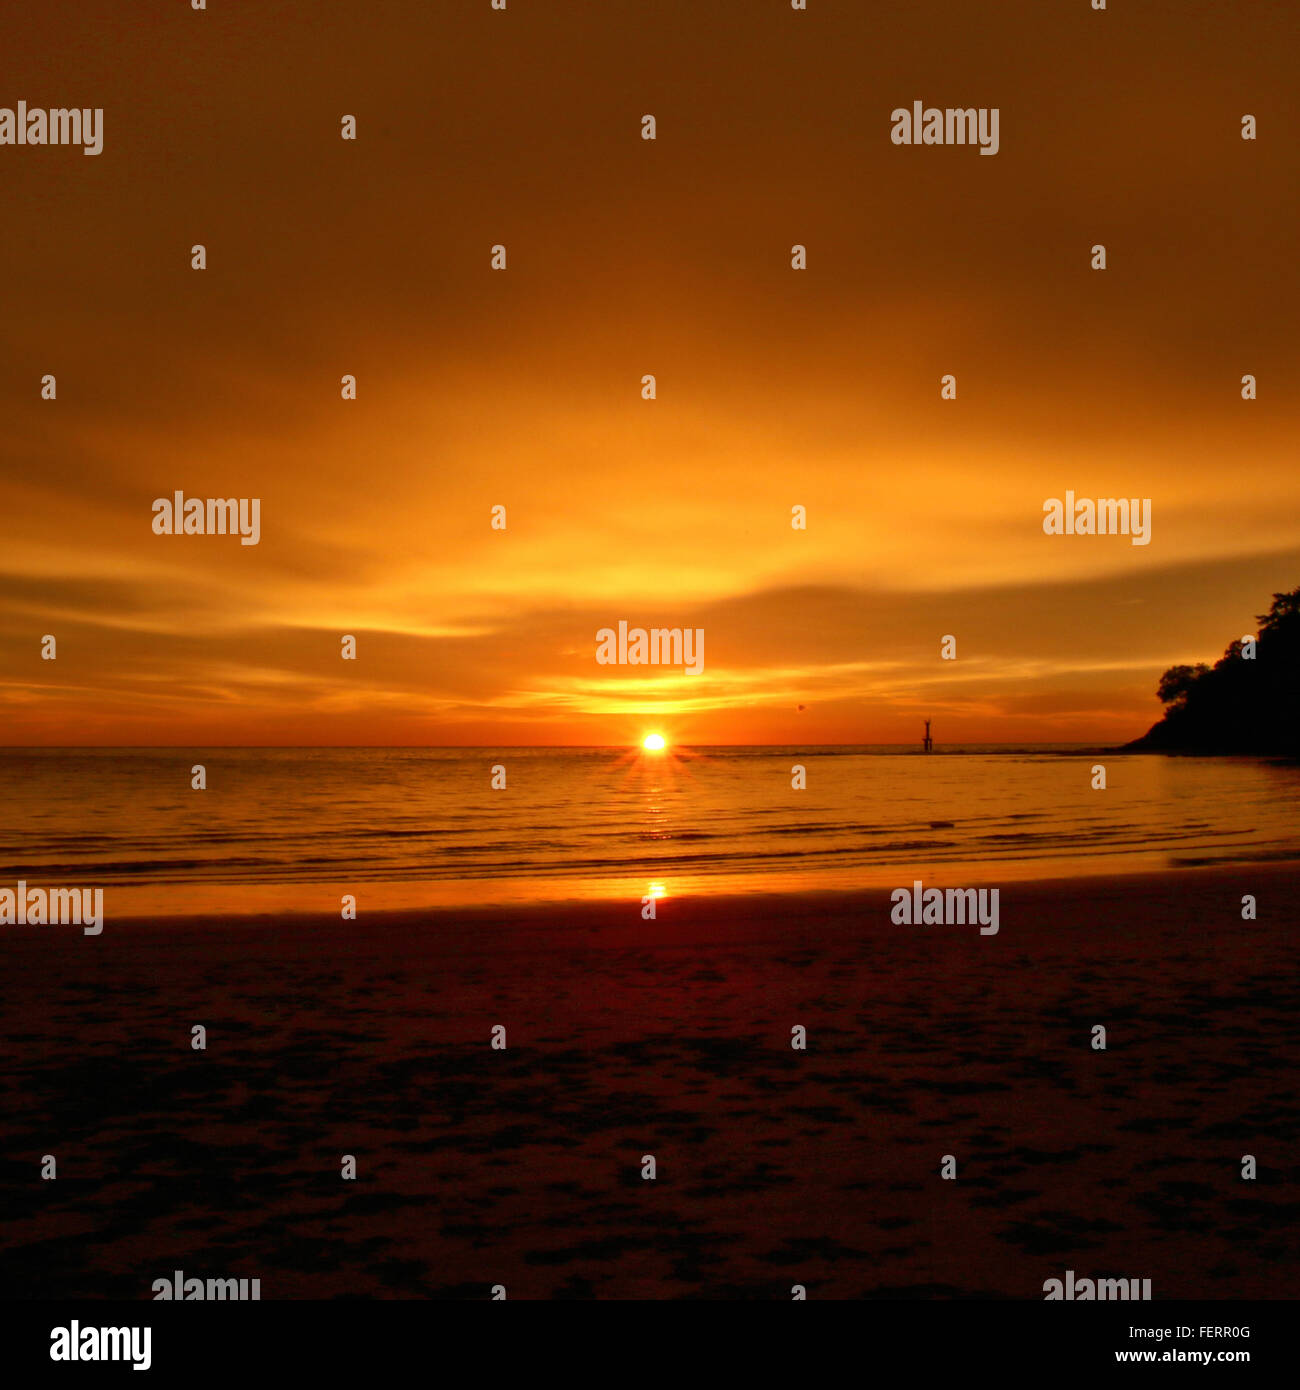 Scenic View Of Sunset Over Sea - Stock Image